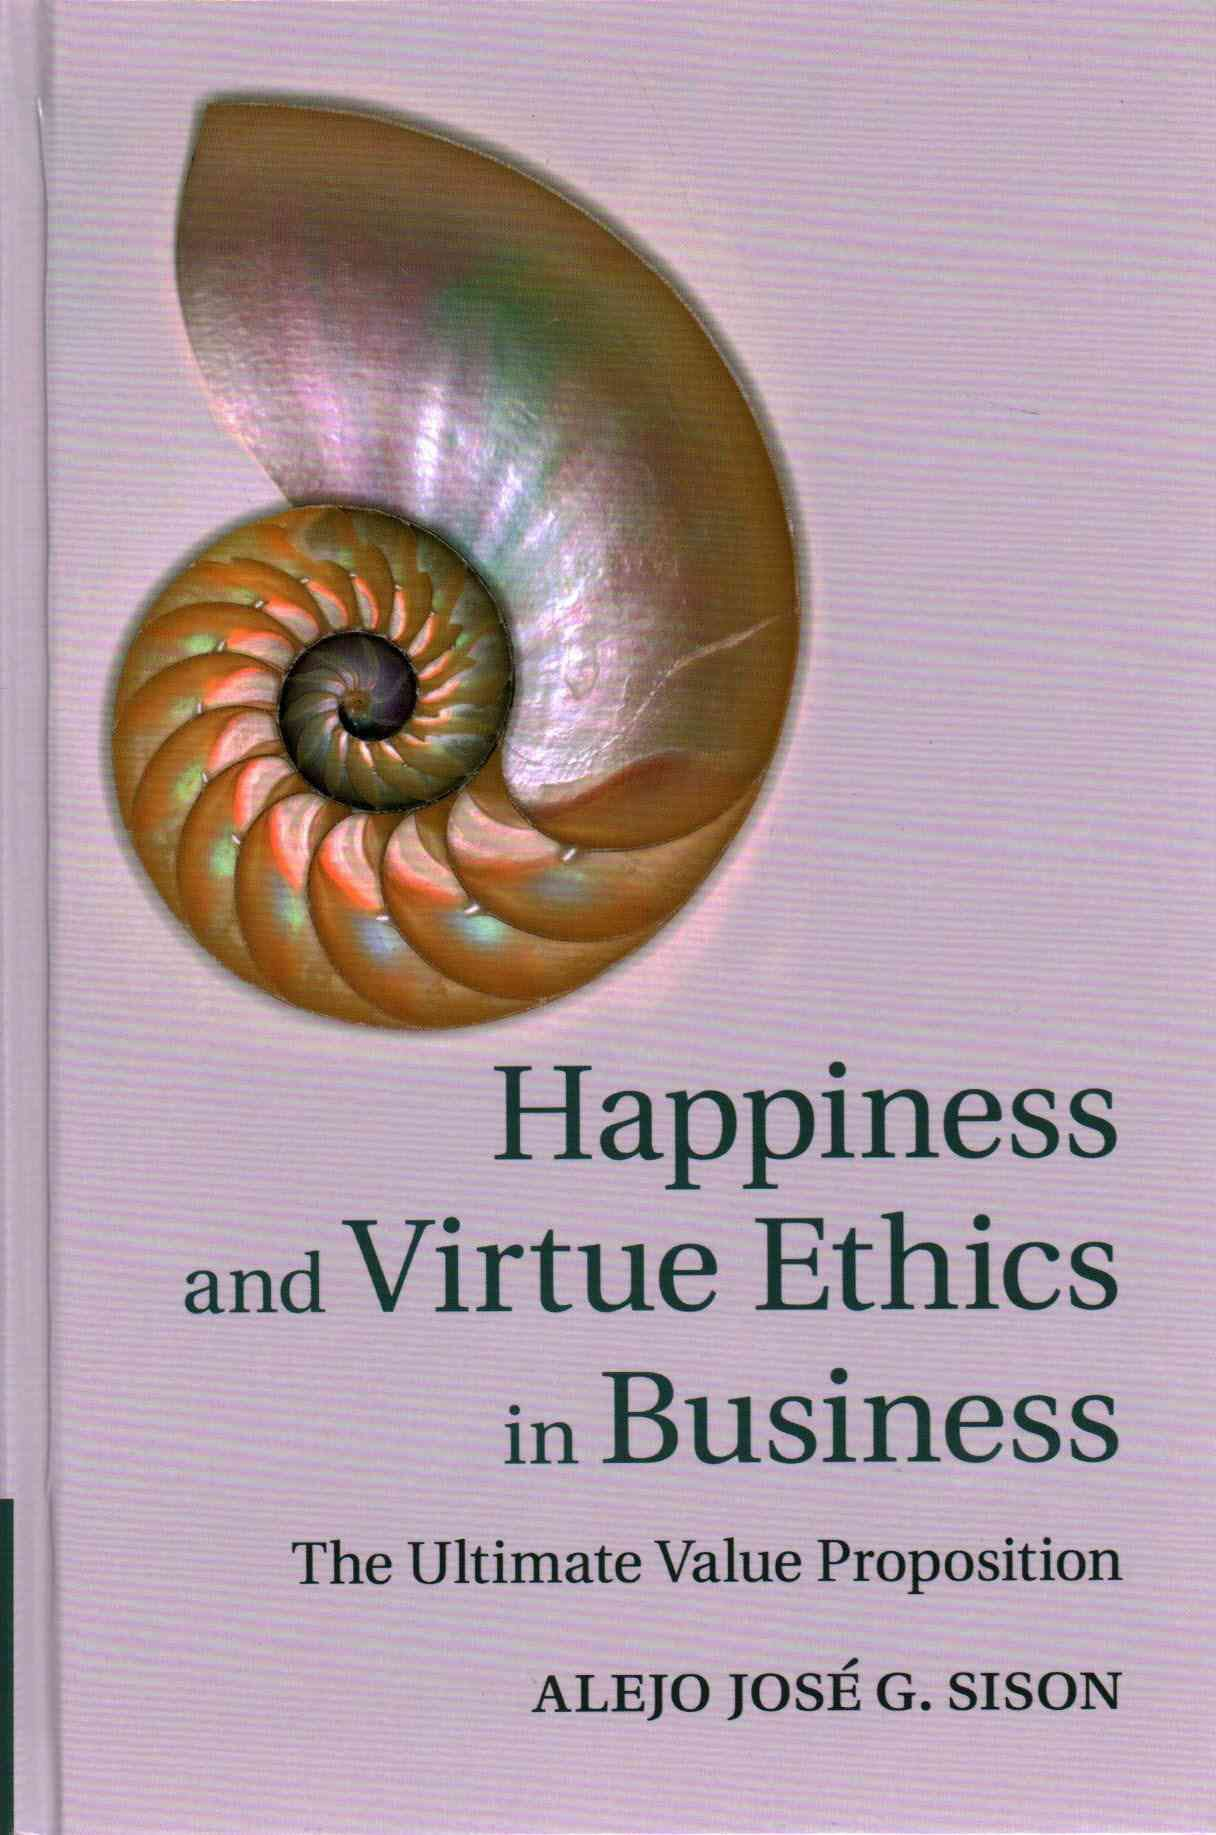 Business Ethics Book Happiness And Virtue Ethics In